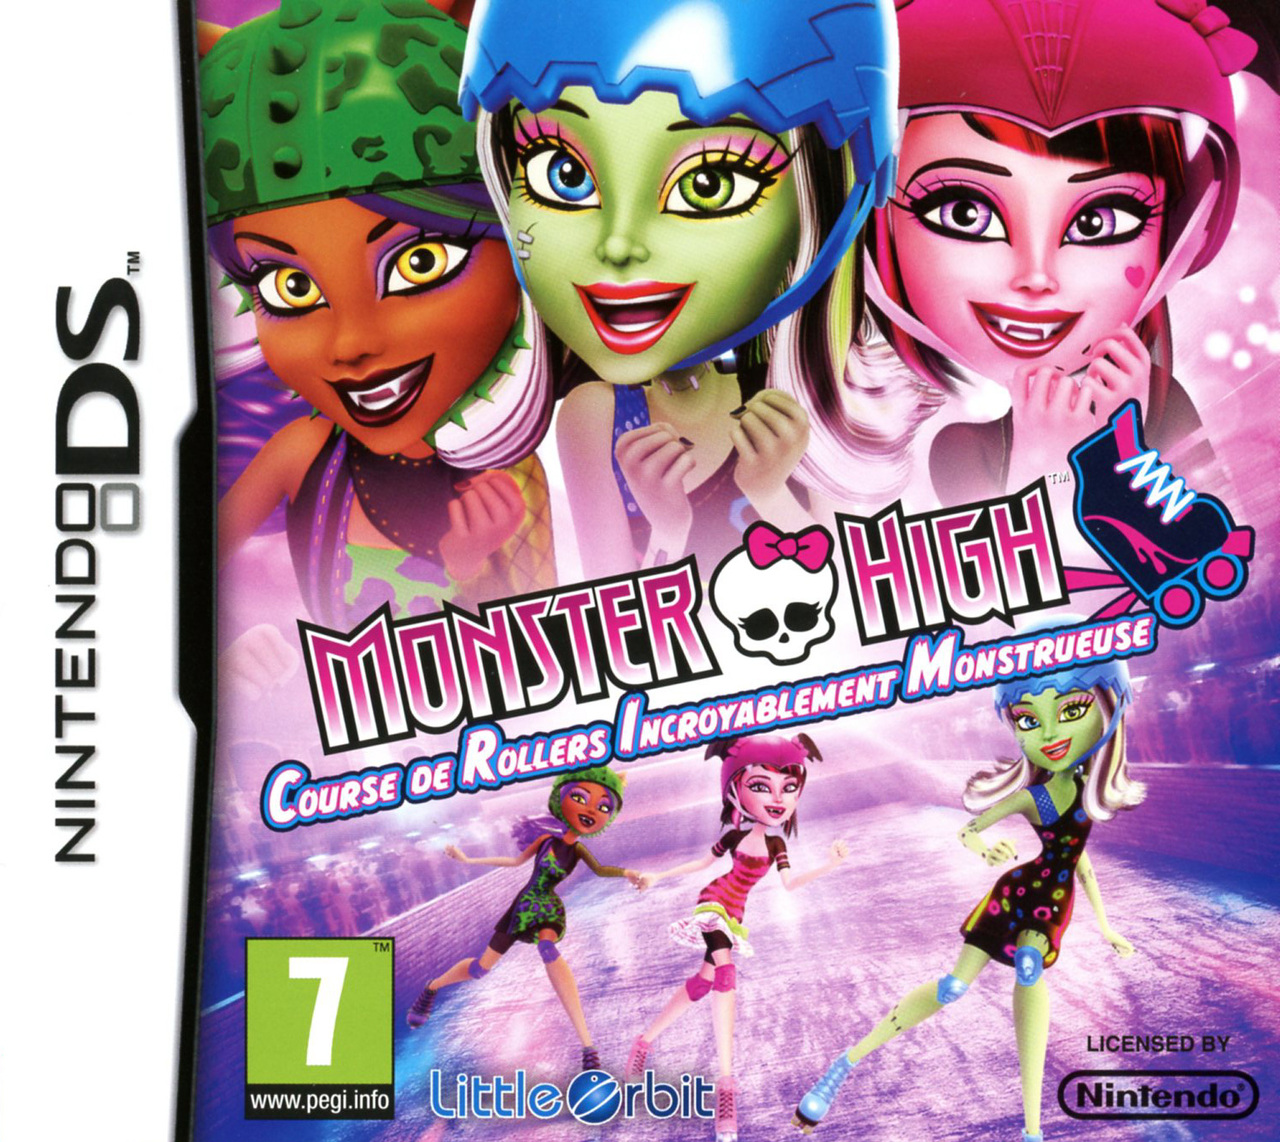 Images Monster High : Course de Rollers Incroyablement Monstrueuse